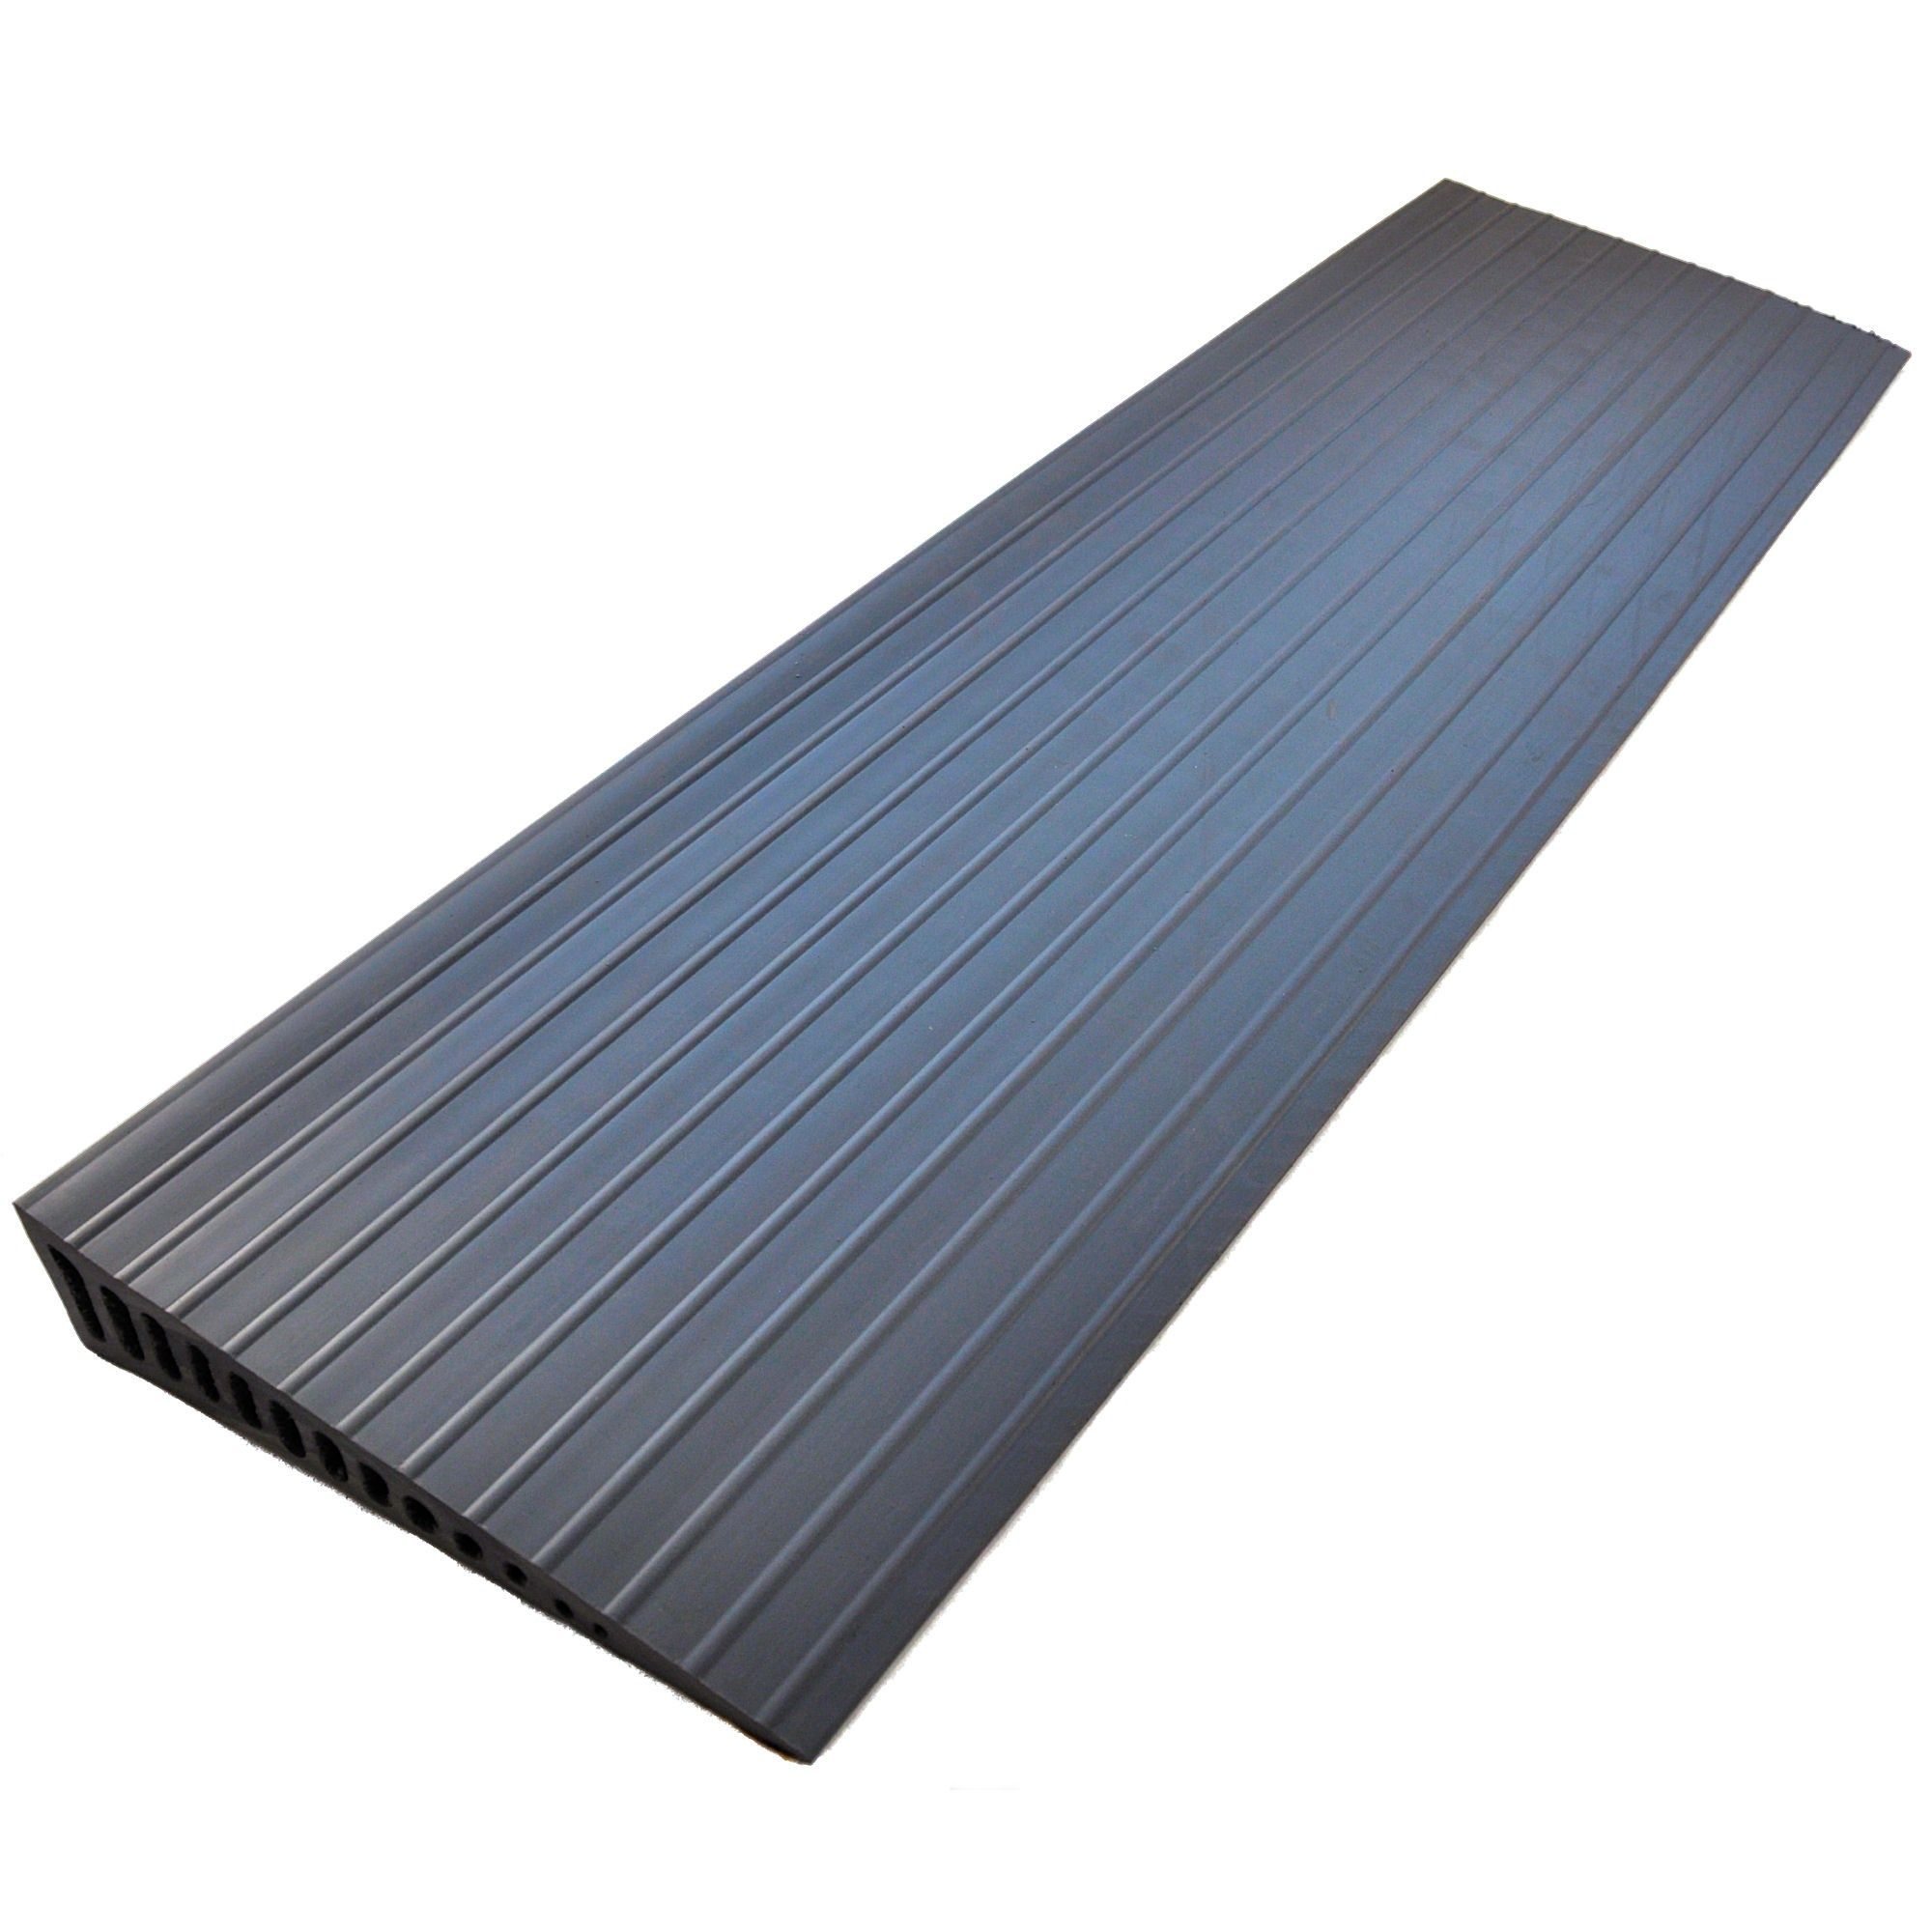 28mm Grey Rubber Door Wedge Ramp